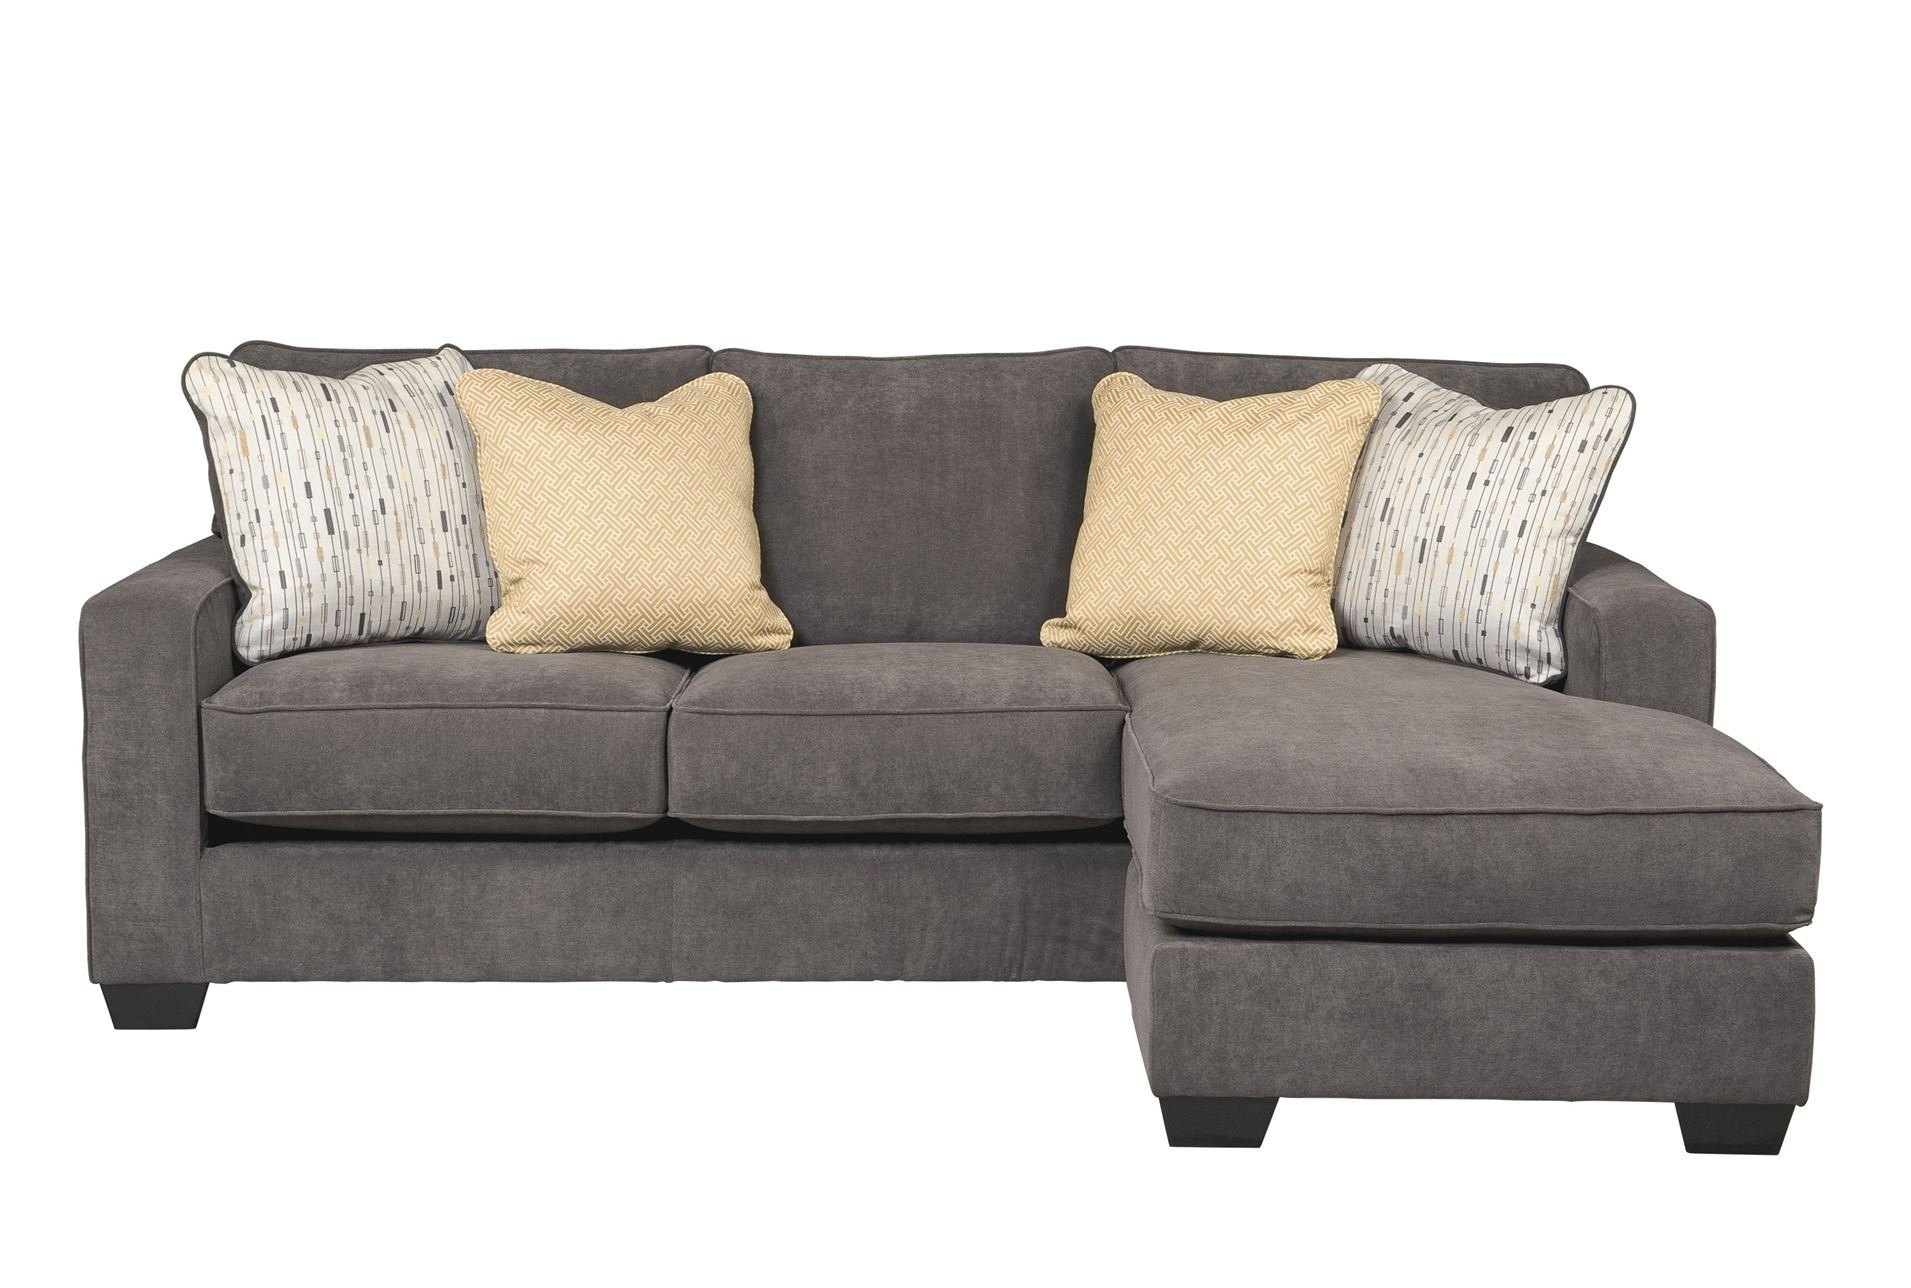 Chaise Couch Covers Inside Most Recent Furniture: Exciting Sectional Sofa Covers With Best Colors For (View 5 of 15)